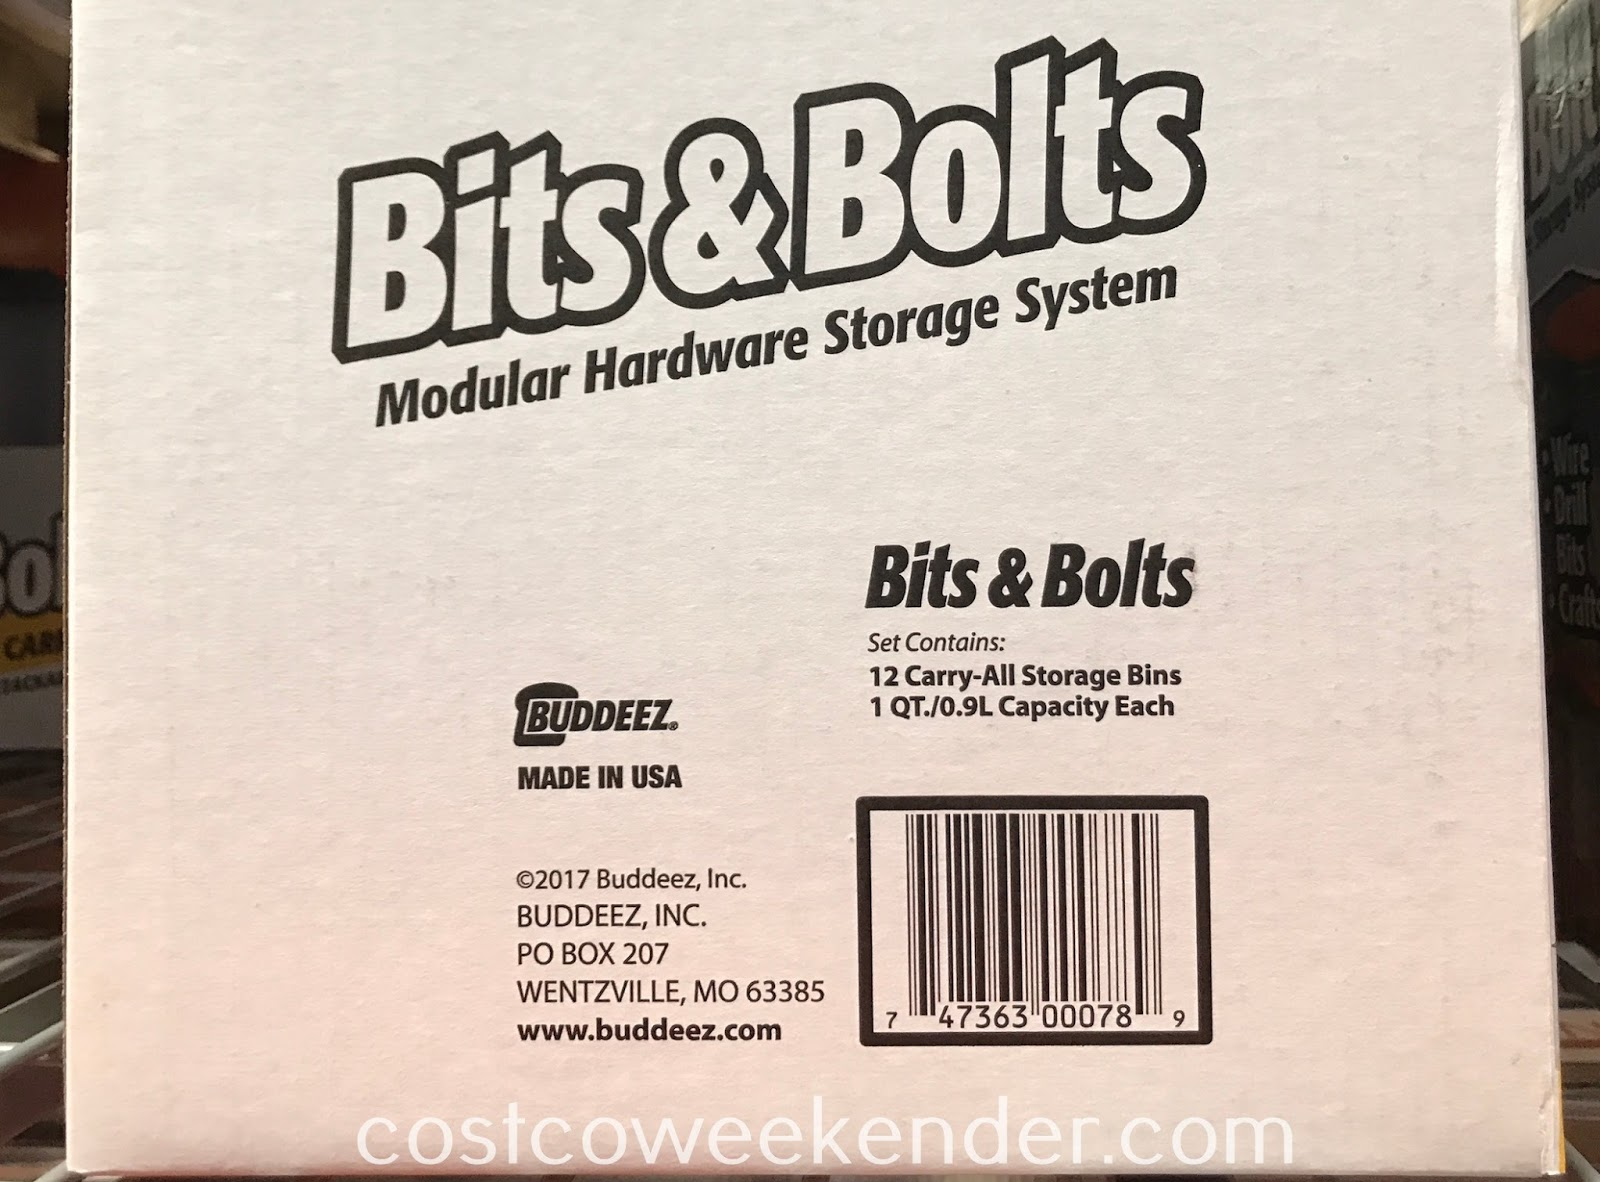 Buddeez Bits & Bolts Carry-All Storage Bins are stackable and come in a pack of 12